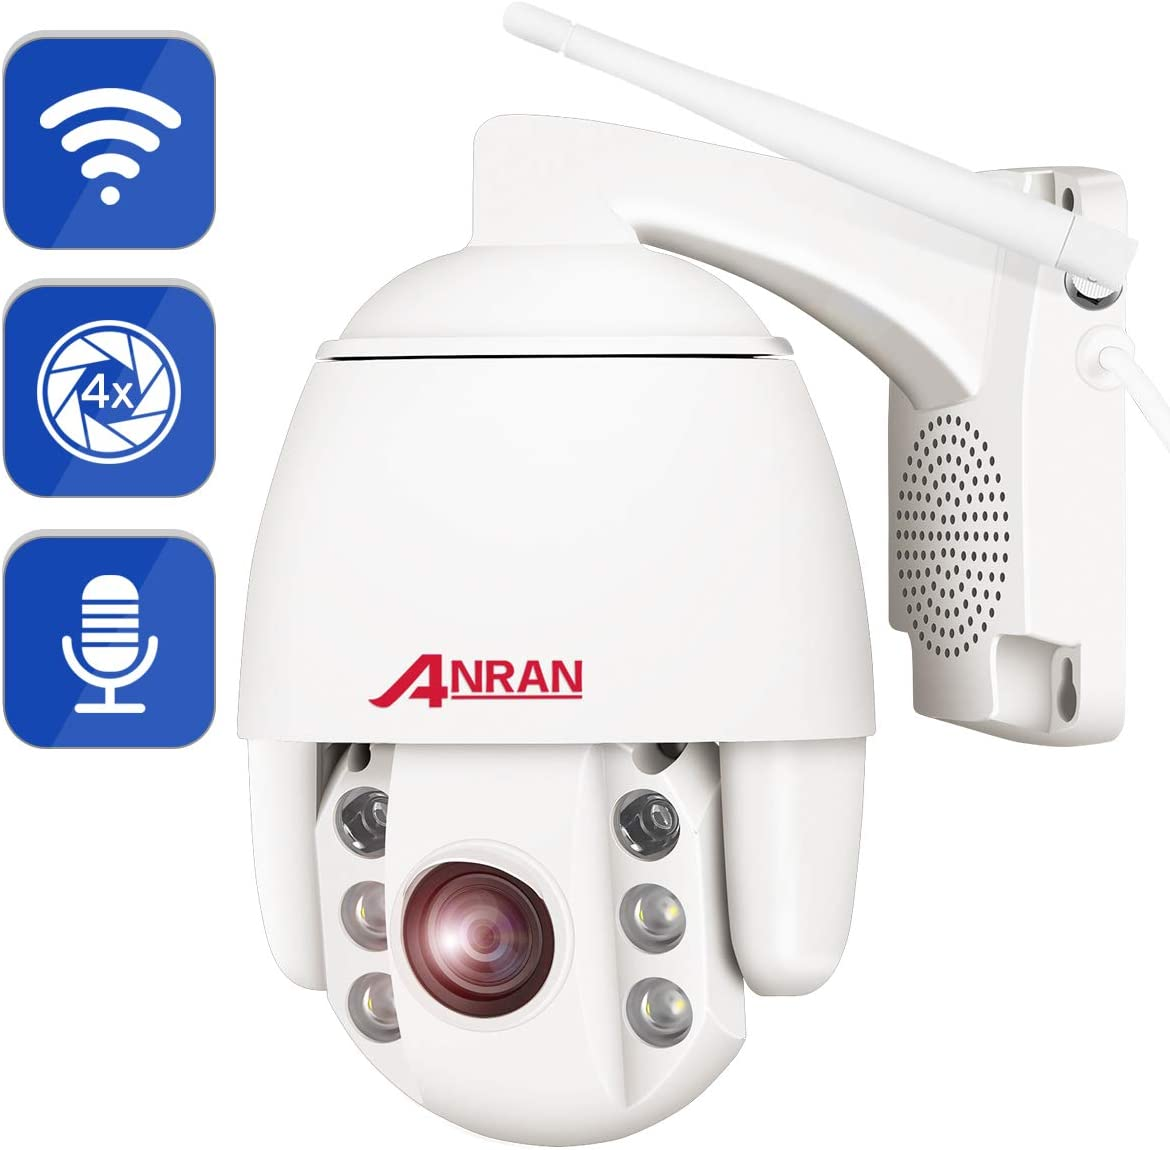 PTZ WiFi Security Camera Outdoor,1080P Home Surveillance Camera Wireless,ANRAN Pan Tilt 4X Optical Zoom Dome Camera